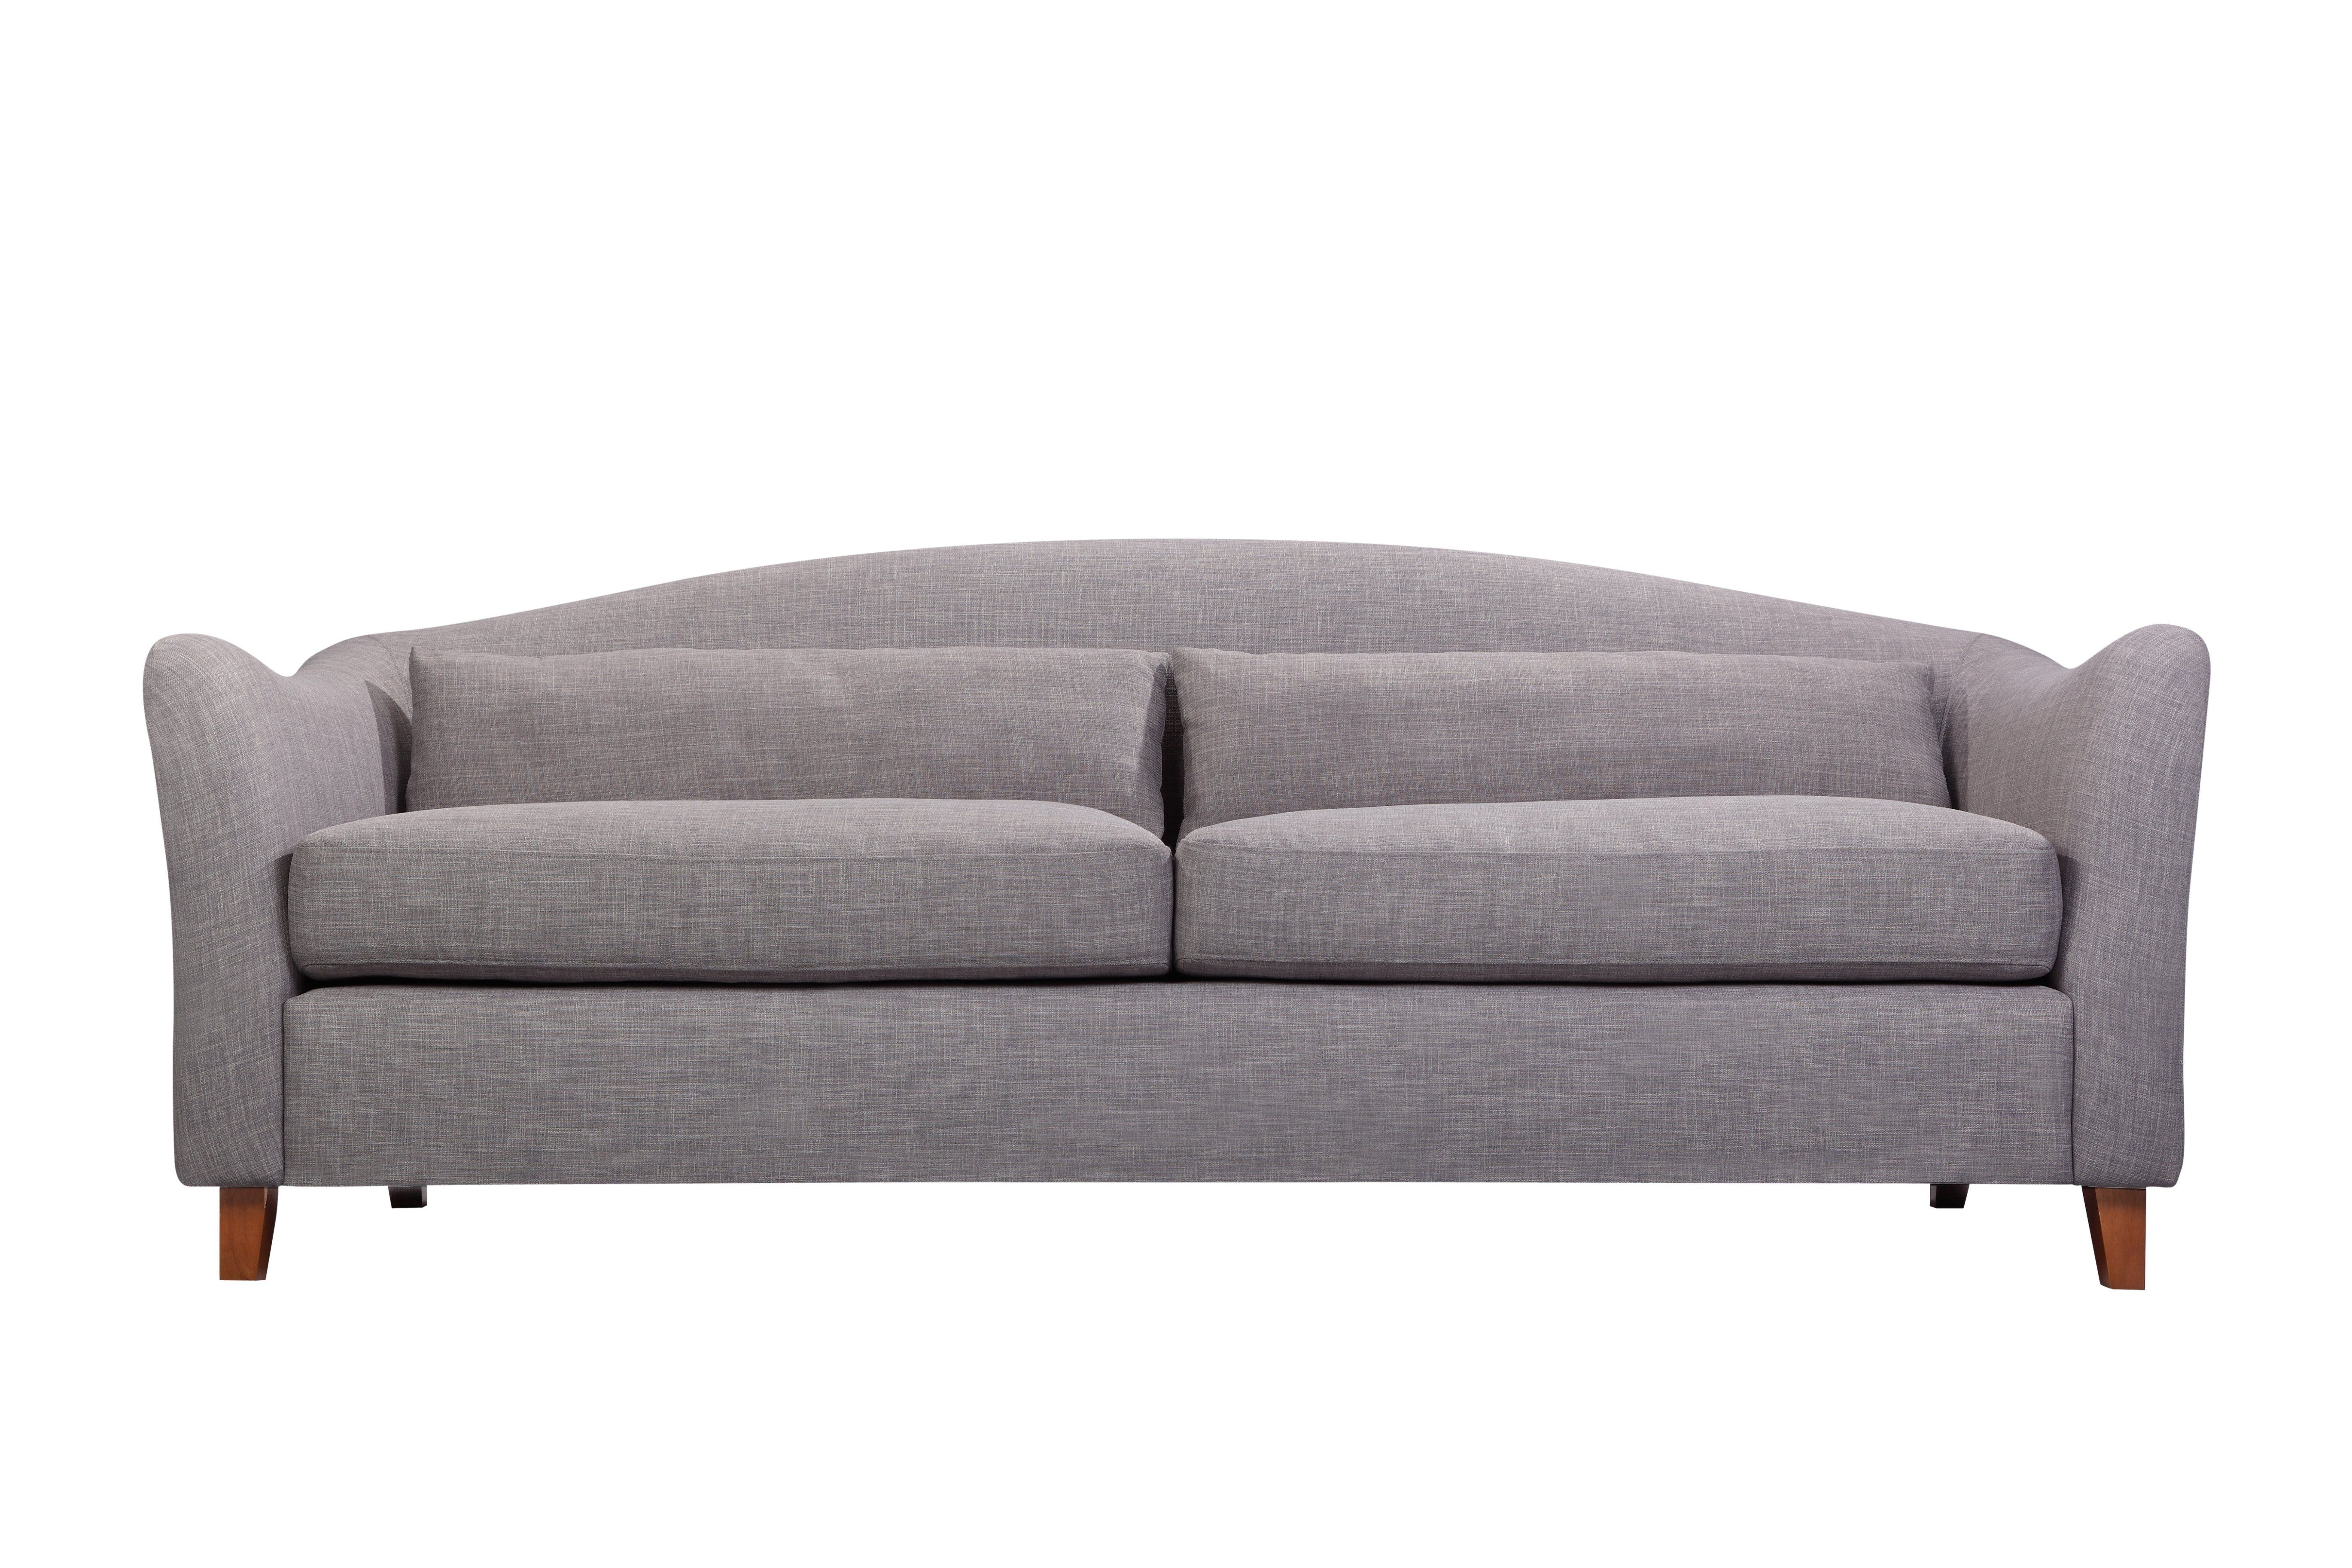 Collin Sofa | Products for Collins Sofa Sectionals With Reversible Chaise (Image 7 of 30)